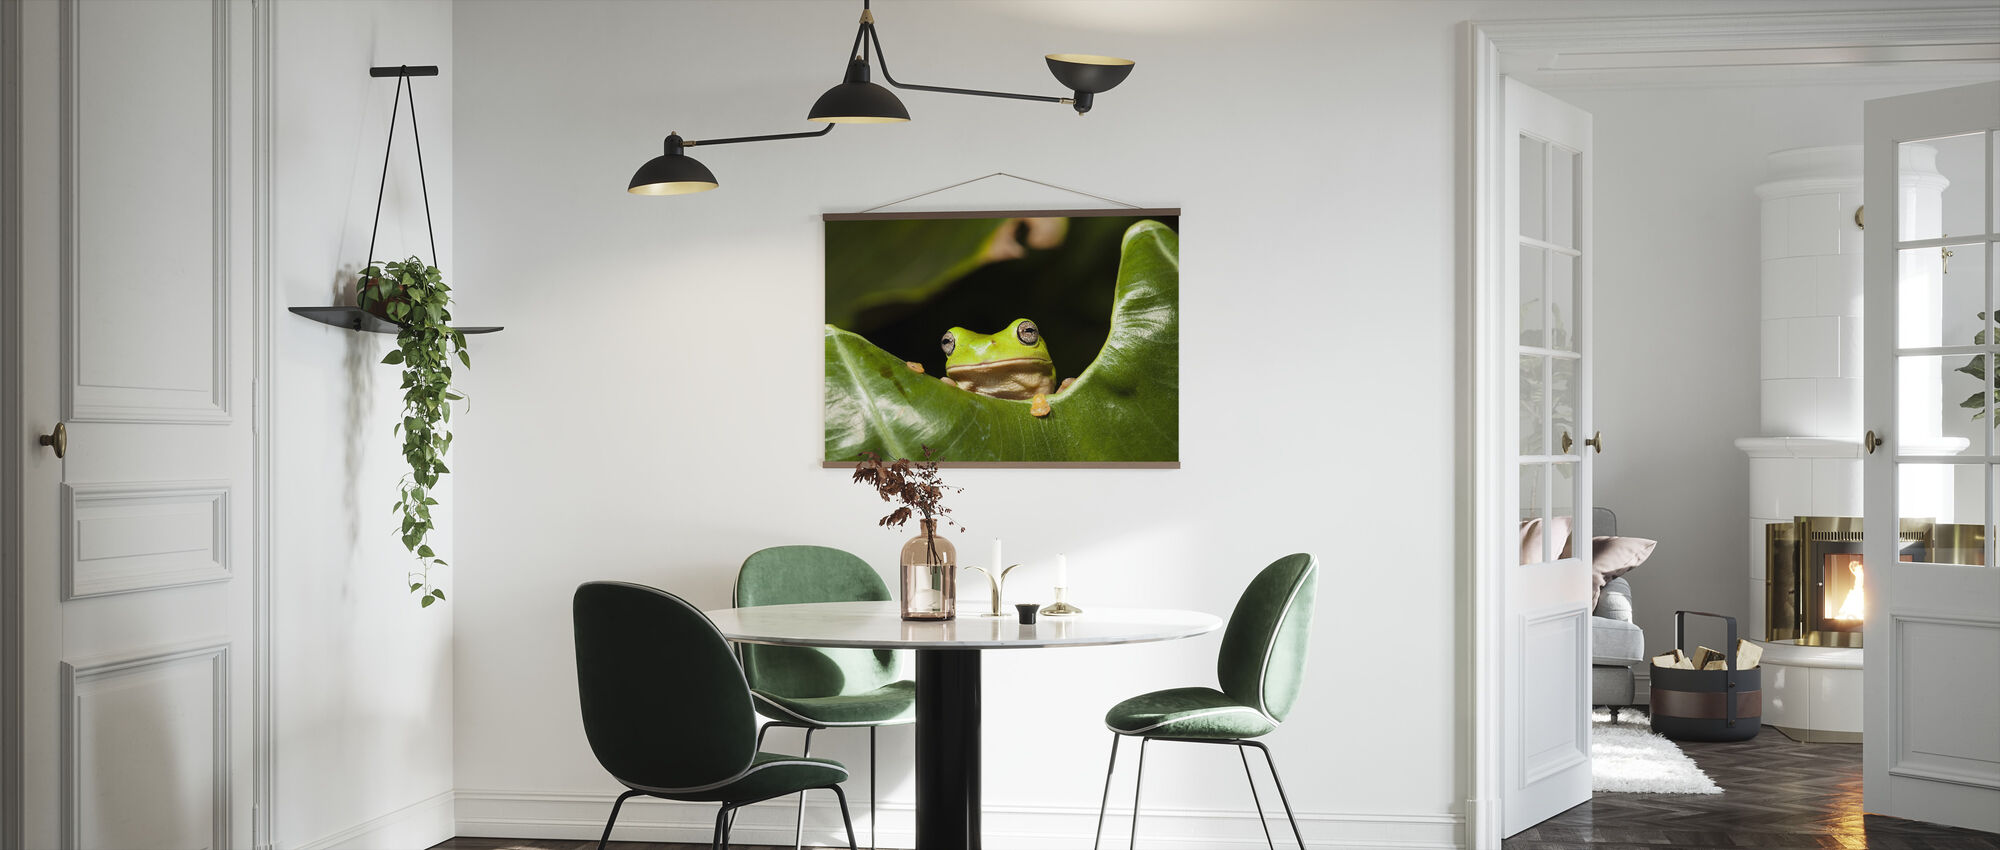 Green Tree Frog - Poster - Kitchen